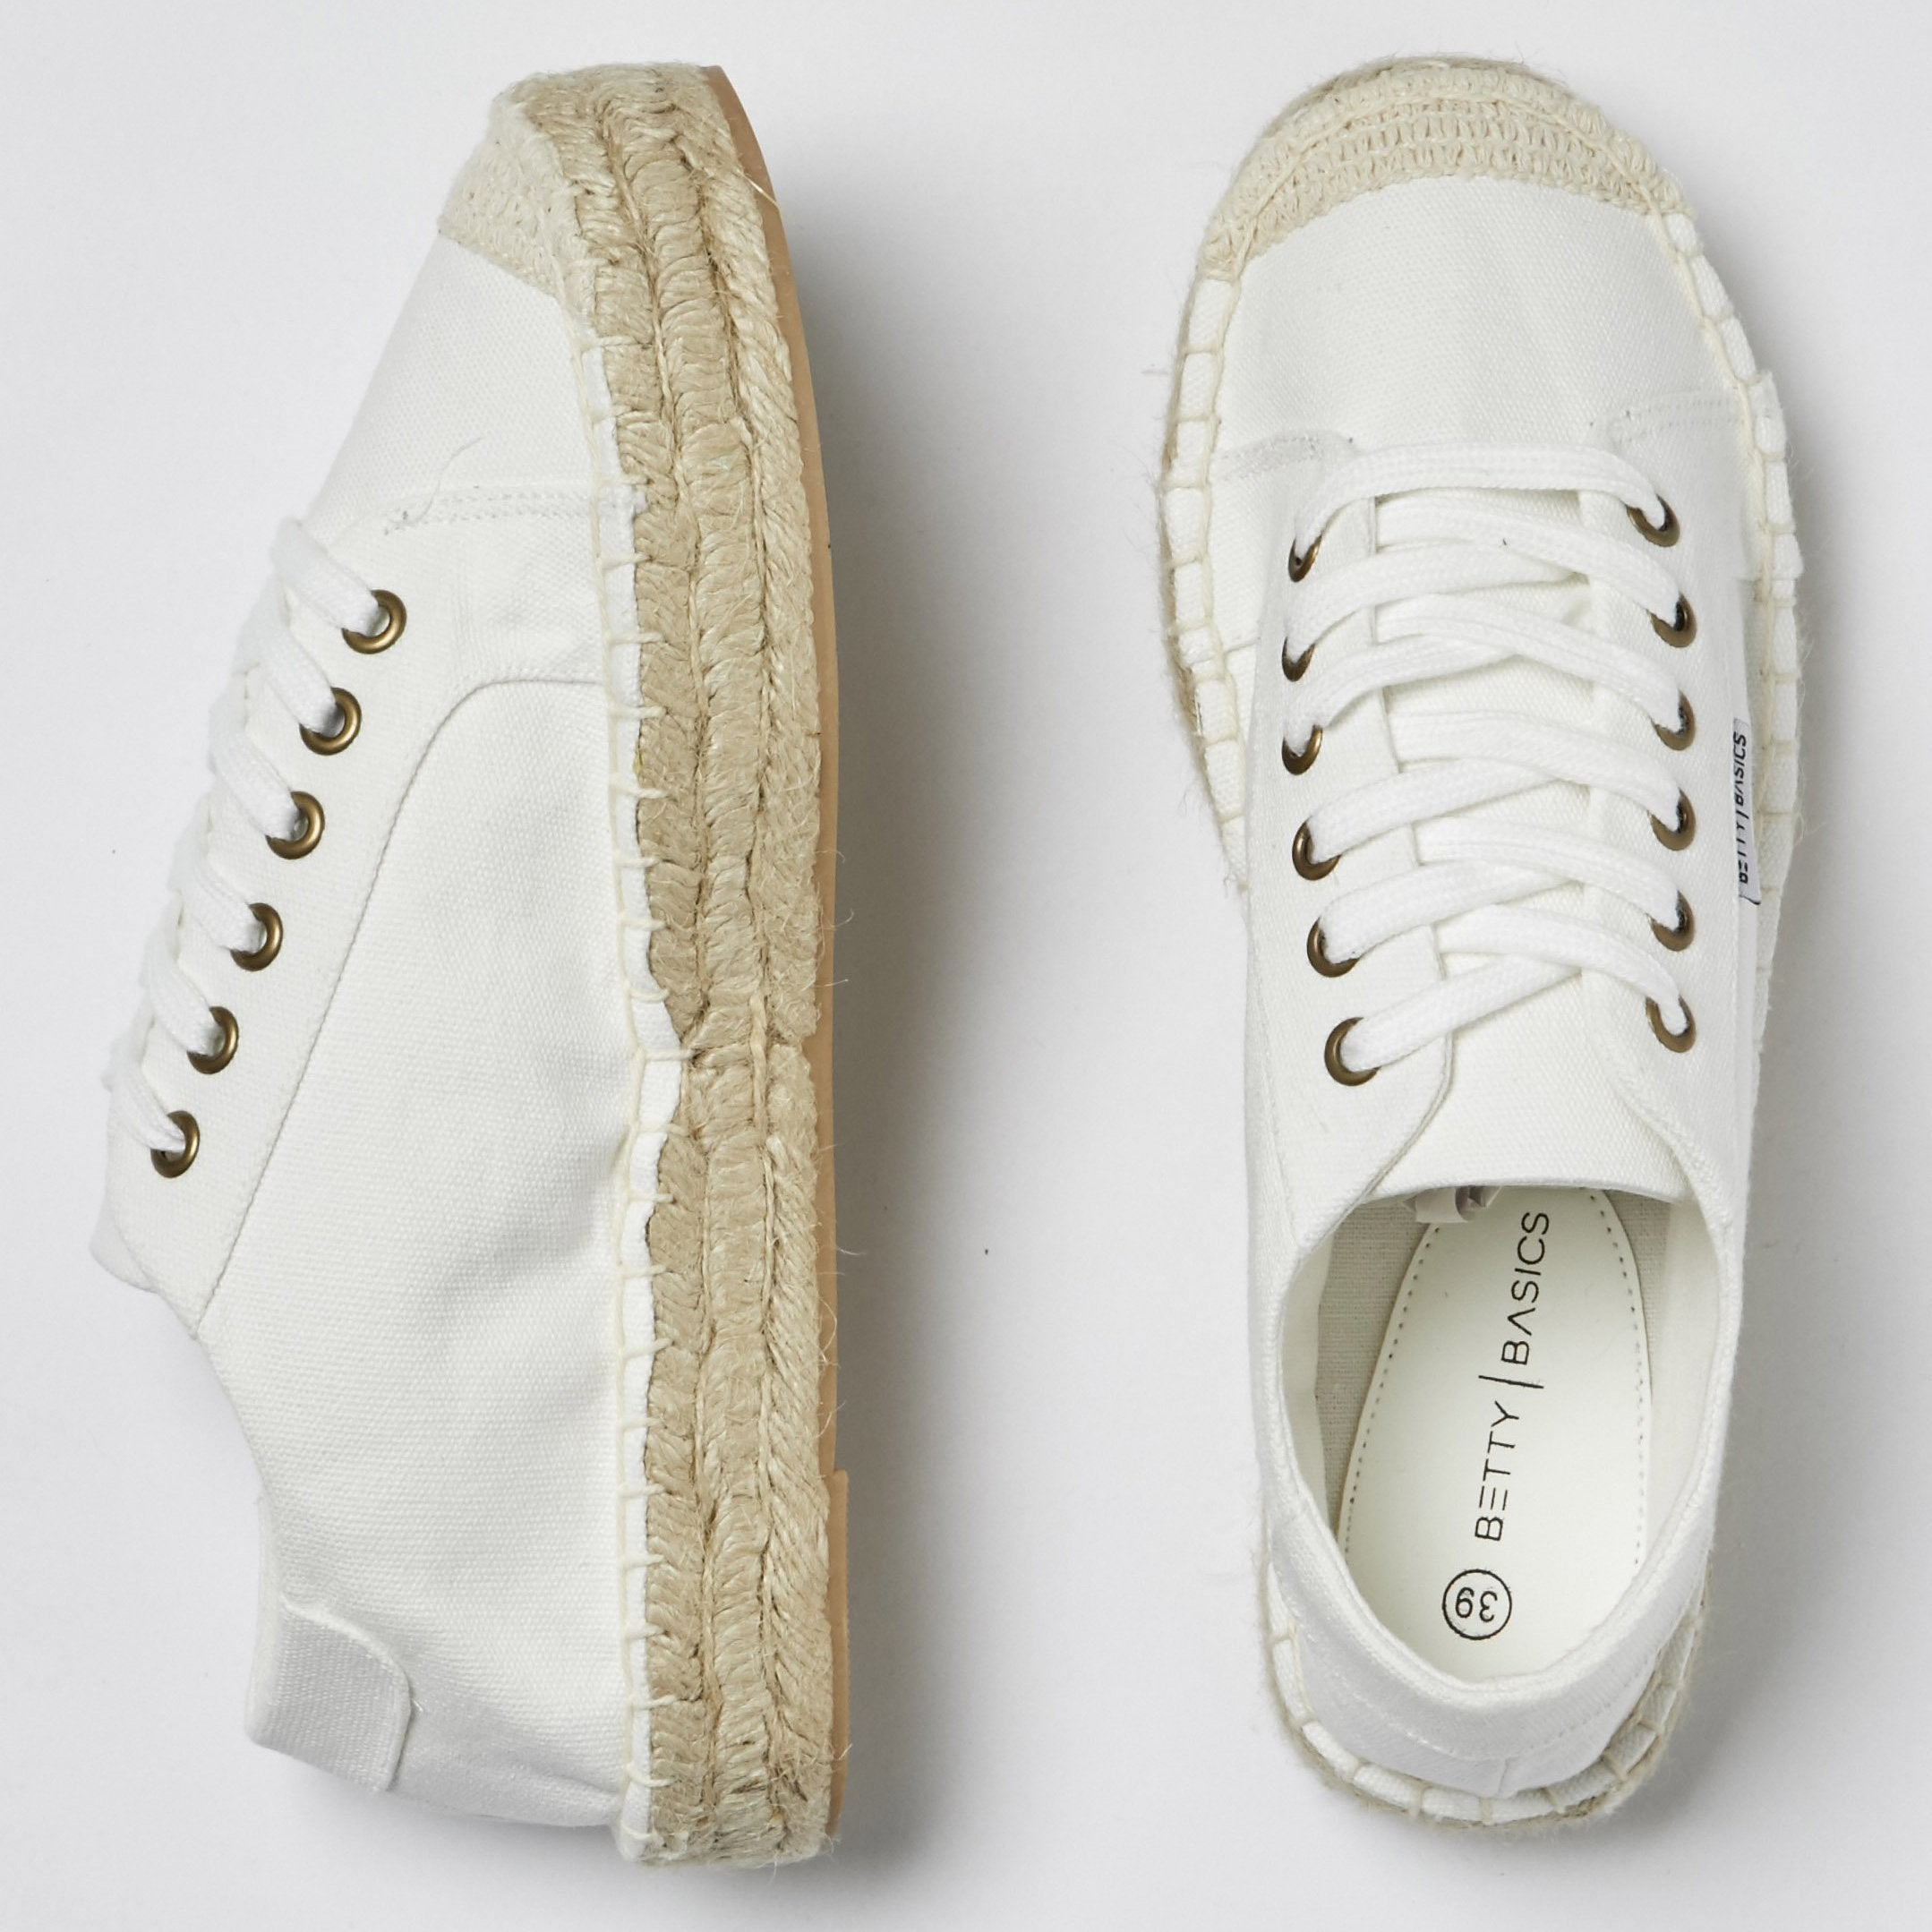 Betty Basics Voyage Espadrille Sneaker in Off White